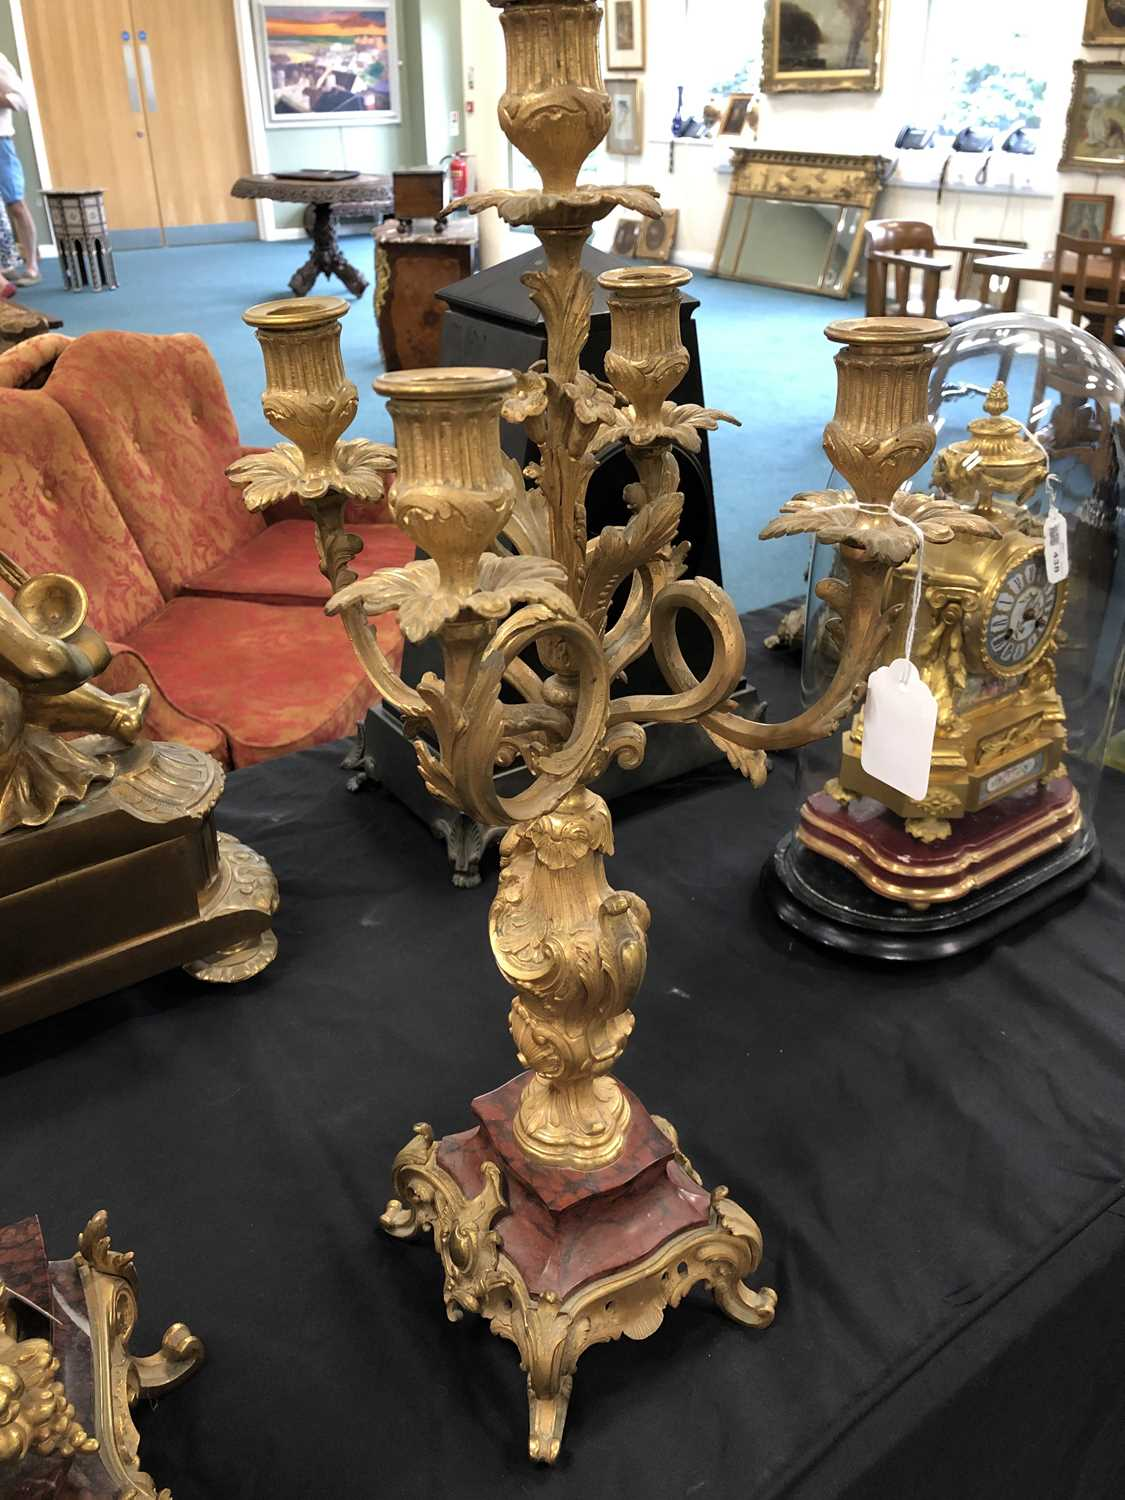 A late 19th/early 20th century, French, Rococo style, ormolu and marble mantel clock garniture - Image 8 of 8